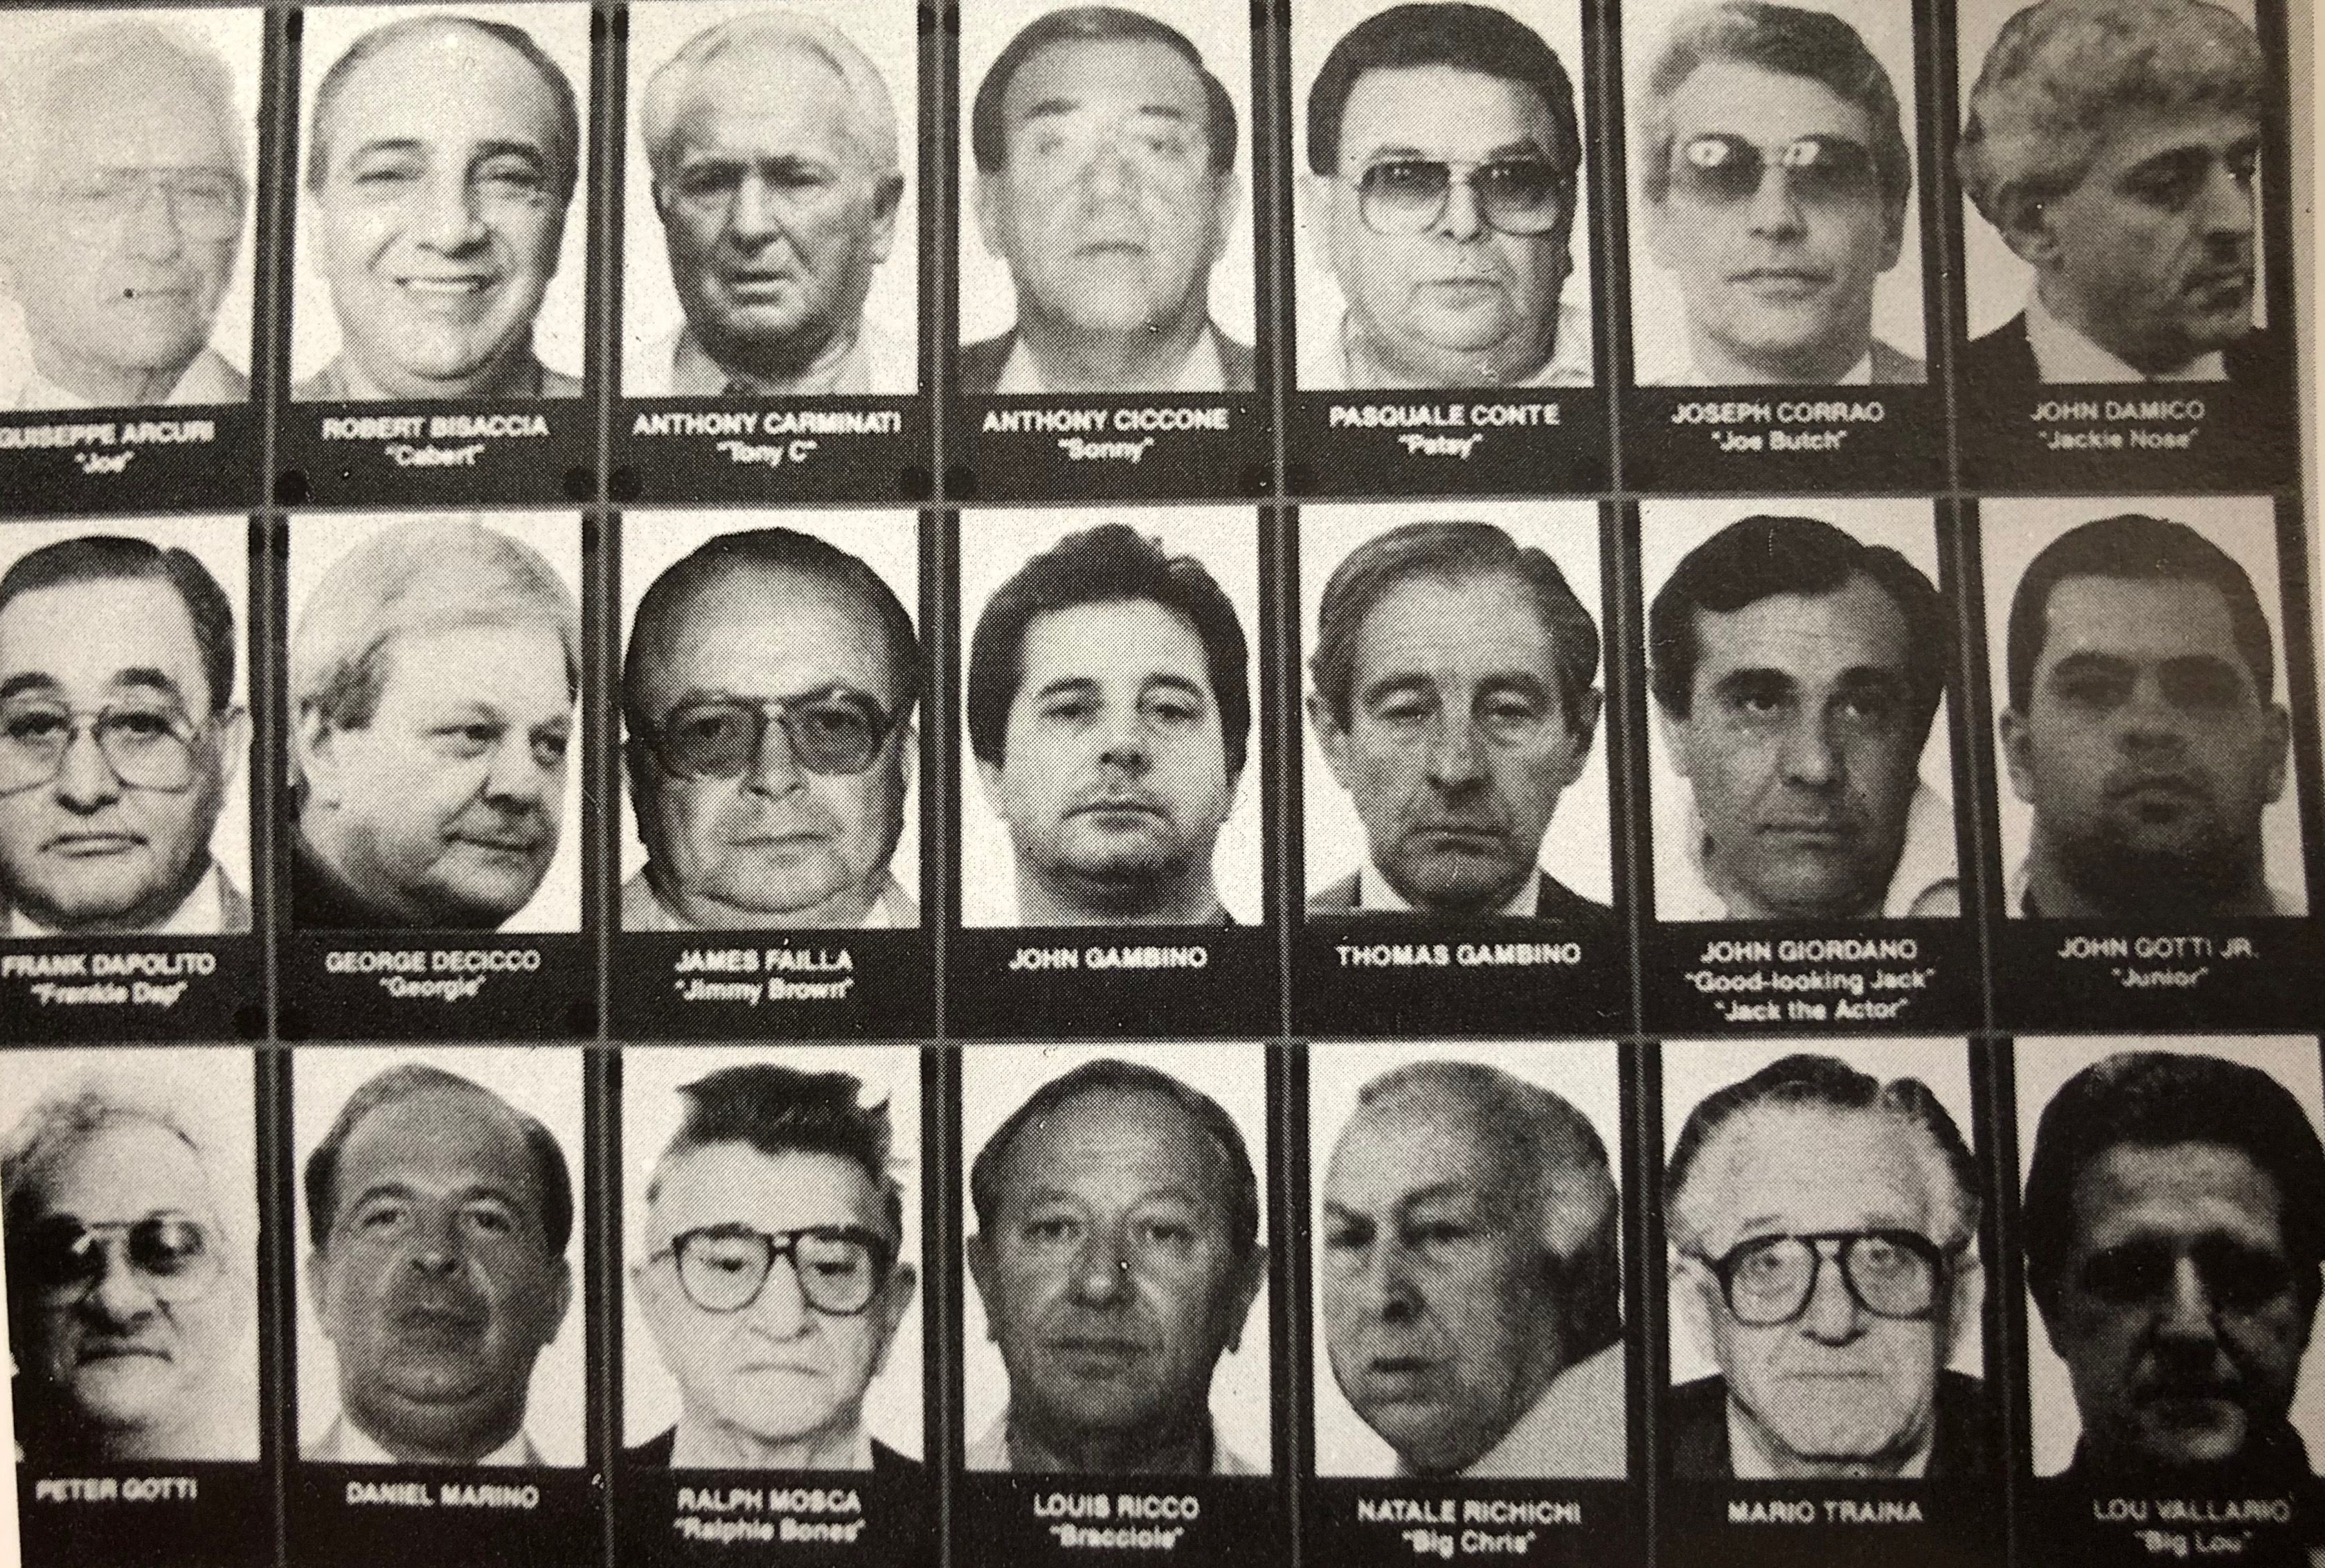 1991 chart of the Gambino family capos | Crime family, Organized crime,  Capos